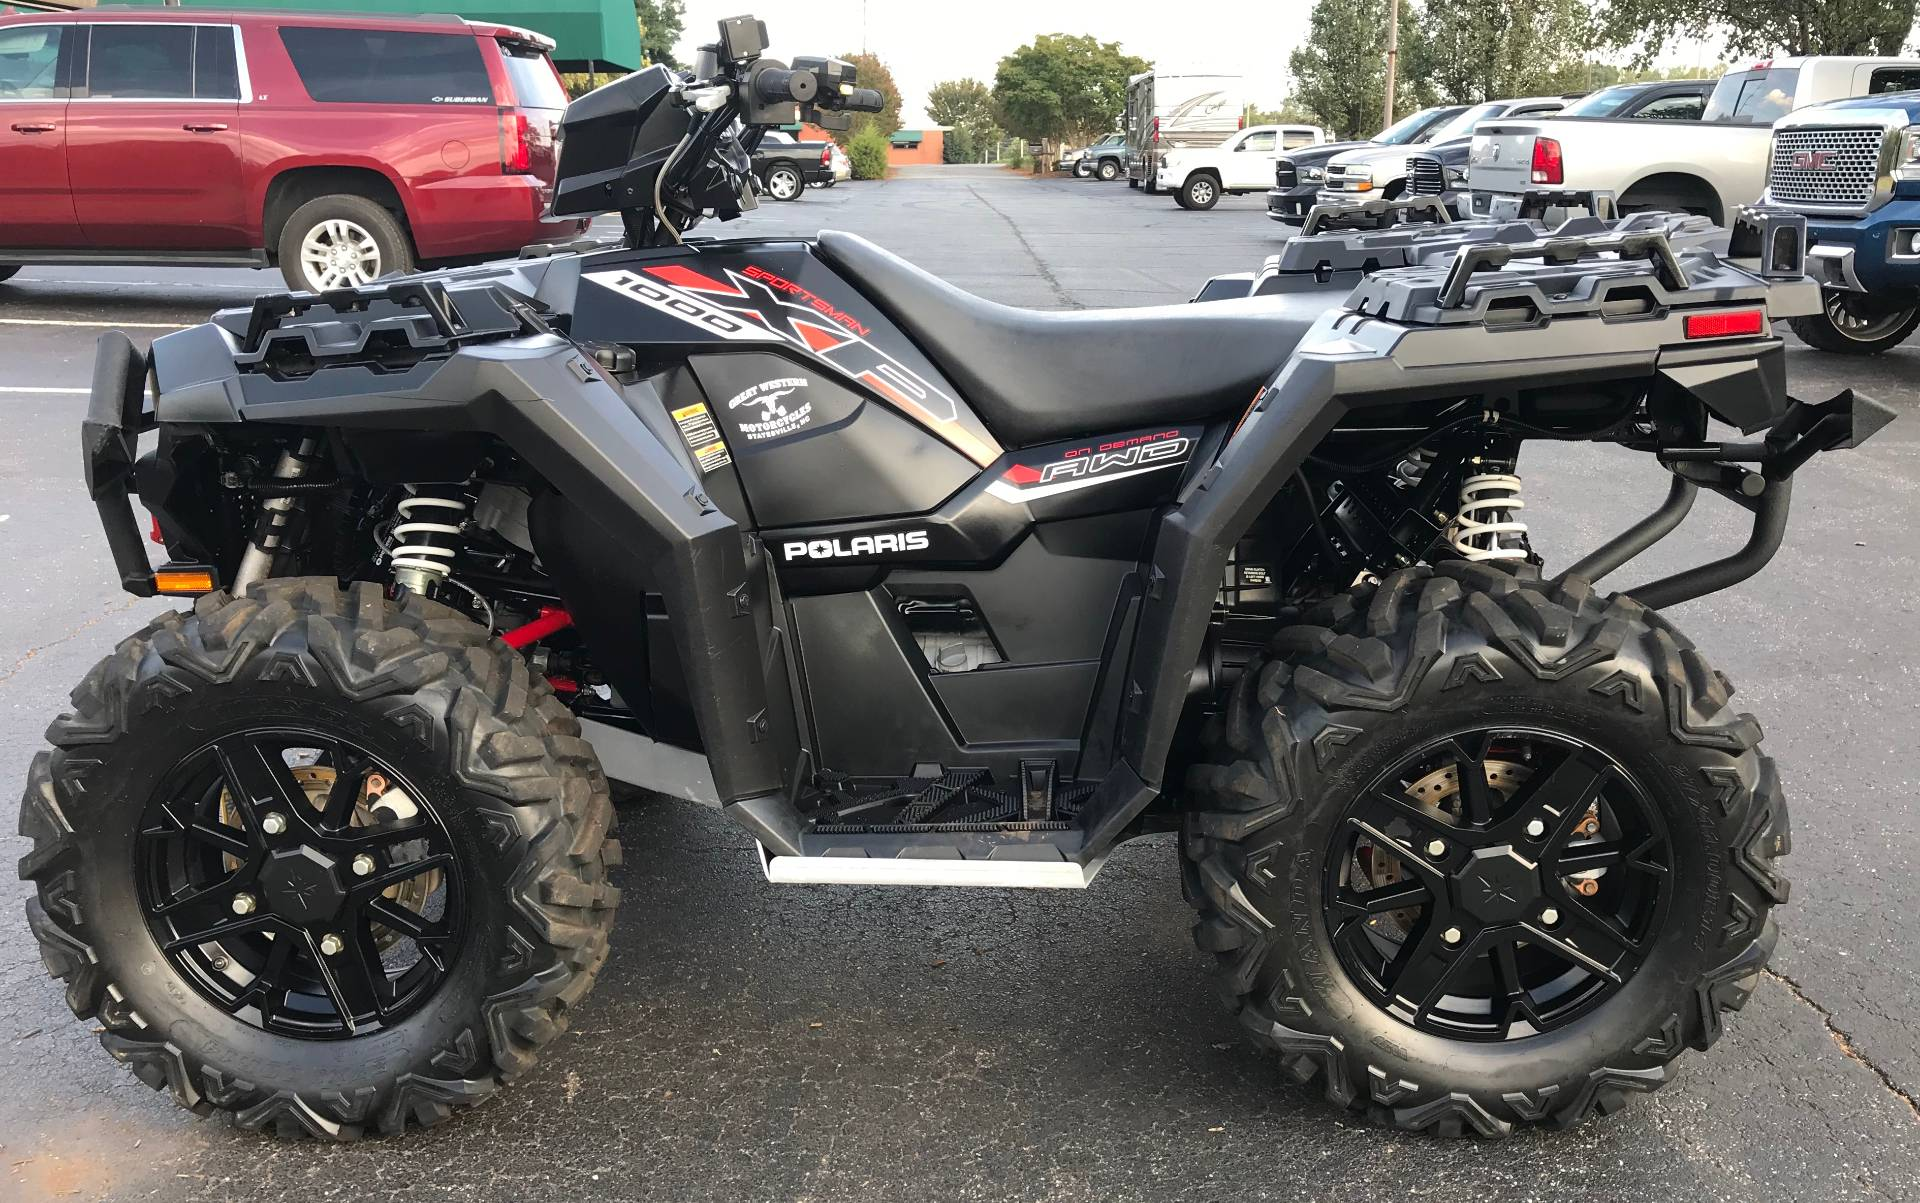 2017 Polaris Sportsman XP 1000 in Statesville, North Carolina - Photo 6